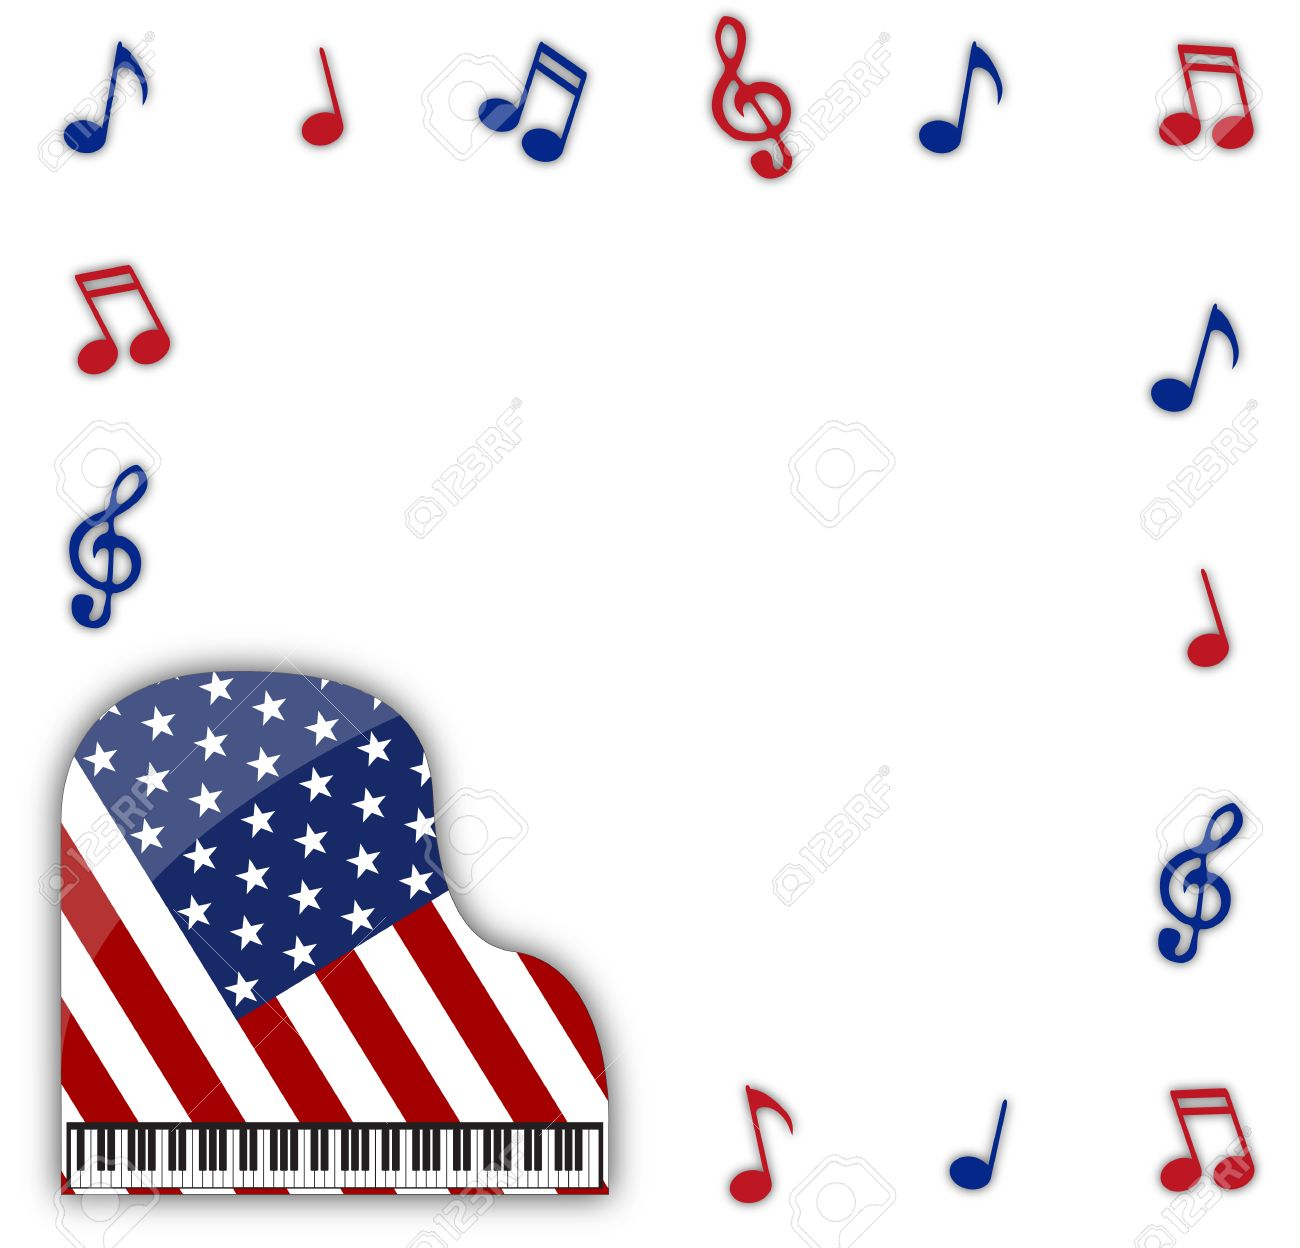 An American Flag Grand Piano Design With Musical Notes Isolated